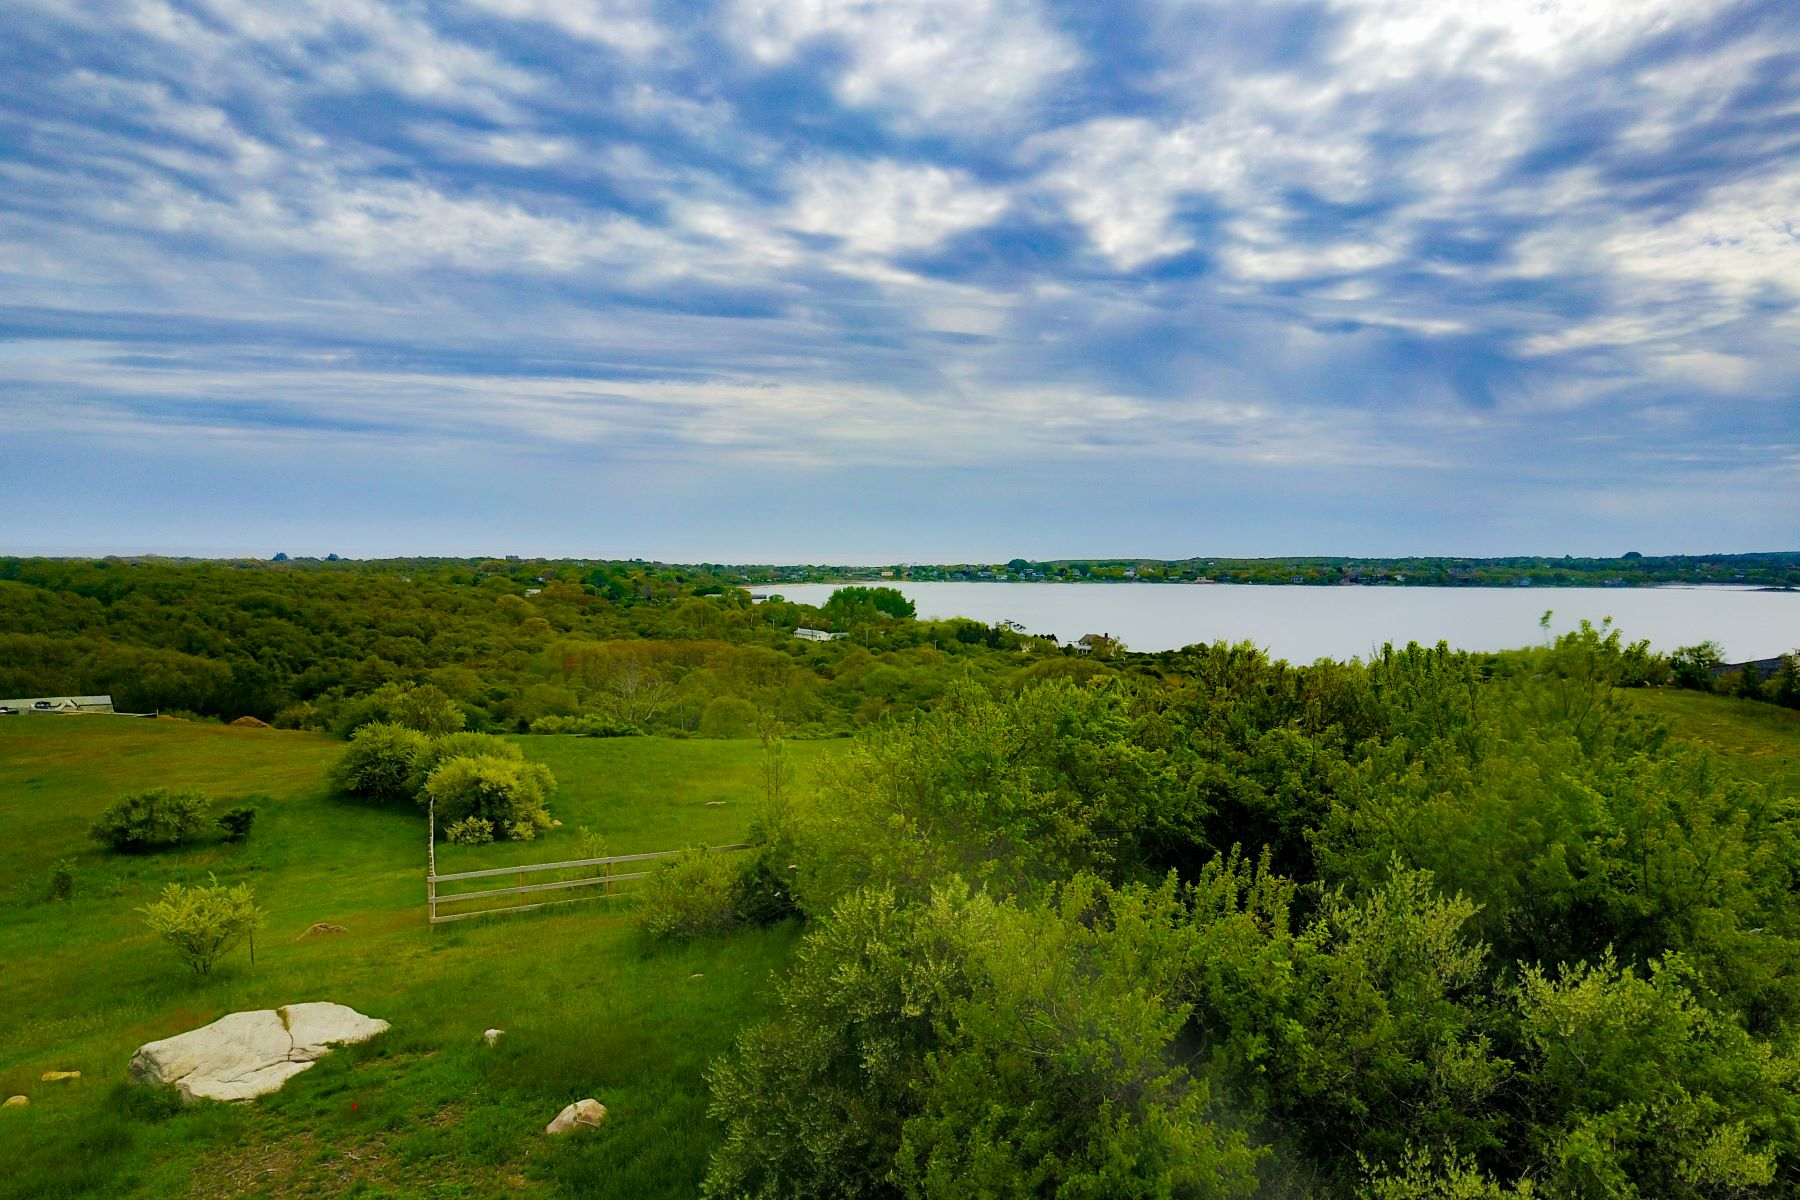 Land for Sale at Startop Waterview Lot, Plans in Place 37 Startop Drive Montauk, New York 11954 United States